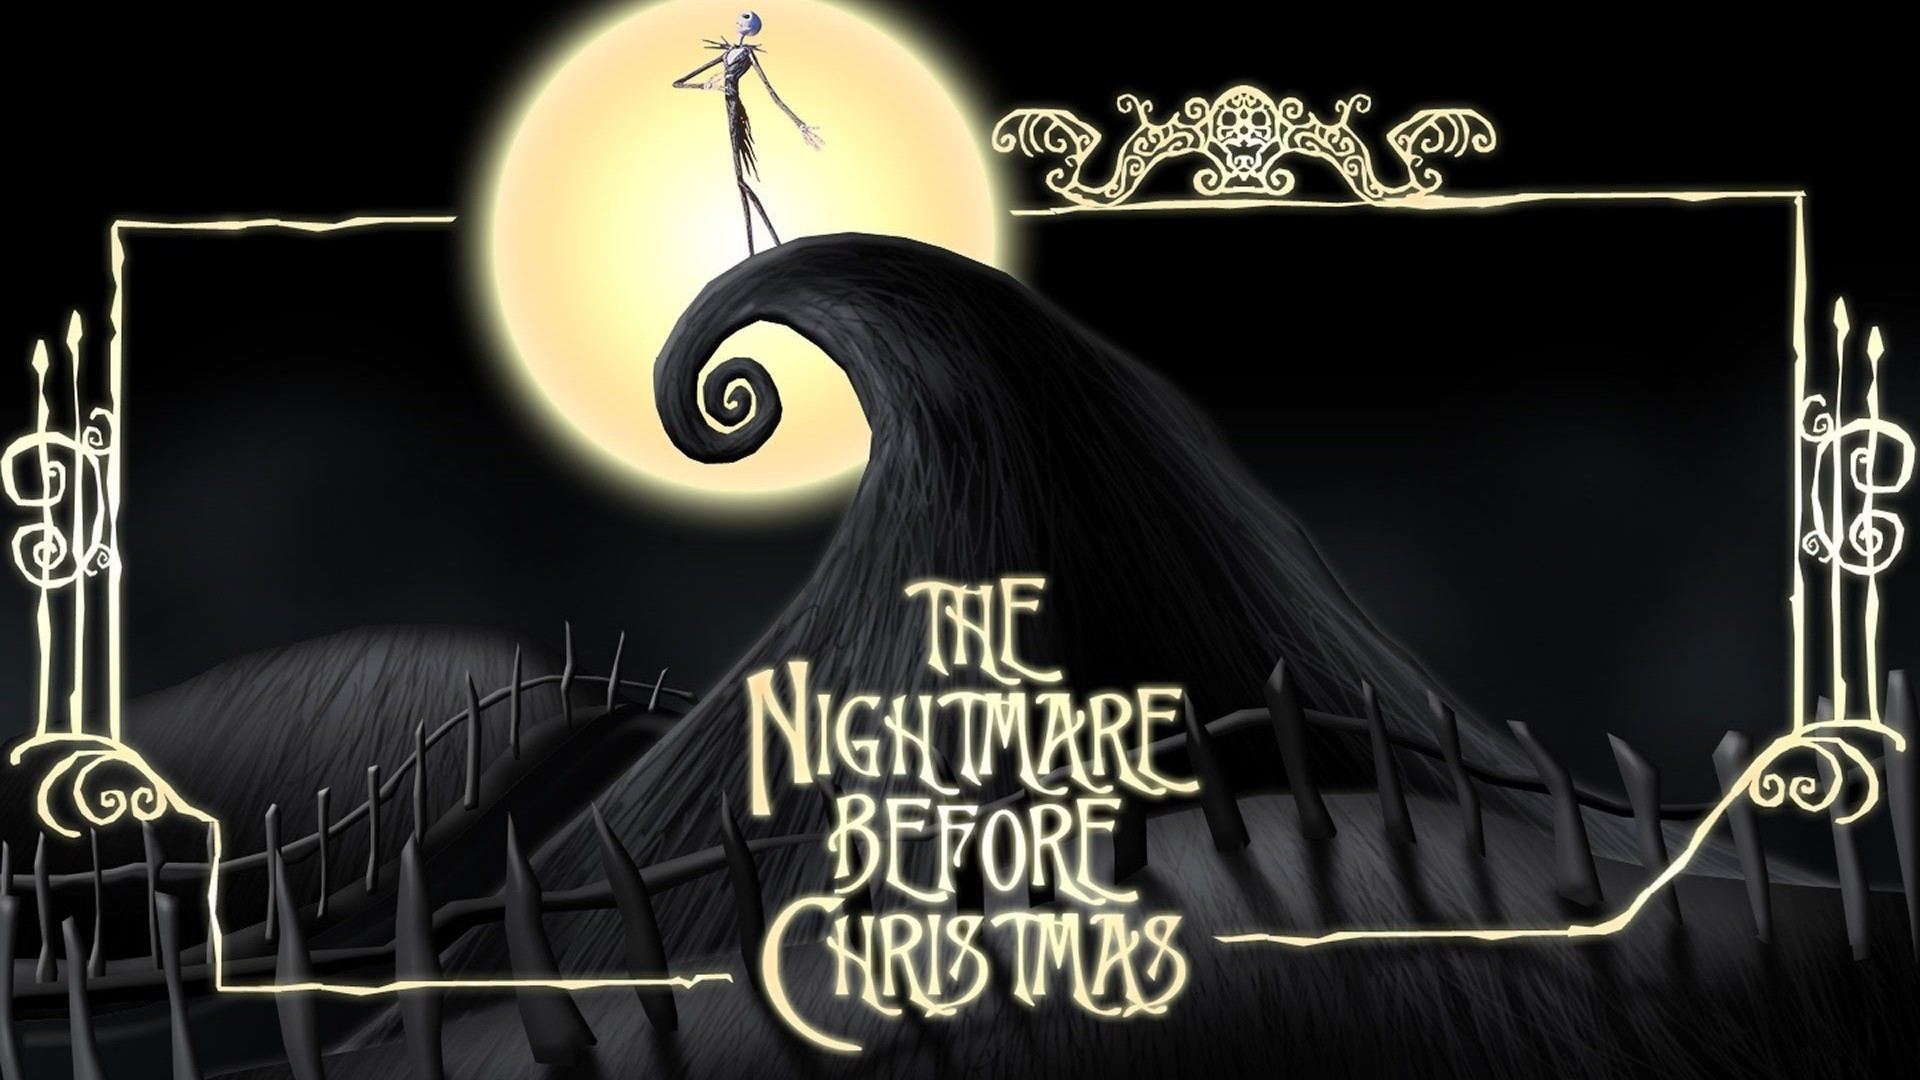 Nightmare Before Christmas Poster Wallpaper with high-resolution 1920x1080 pixel. You can use this poster wallpaper for your Desktop Computers, Mac Screensavers, Windows Backgrounds, iPhone Wallpapers, Tablet or Android Lock screen and another Mobile device